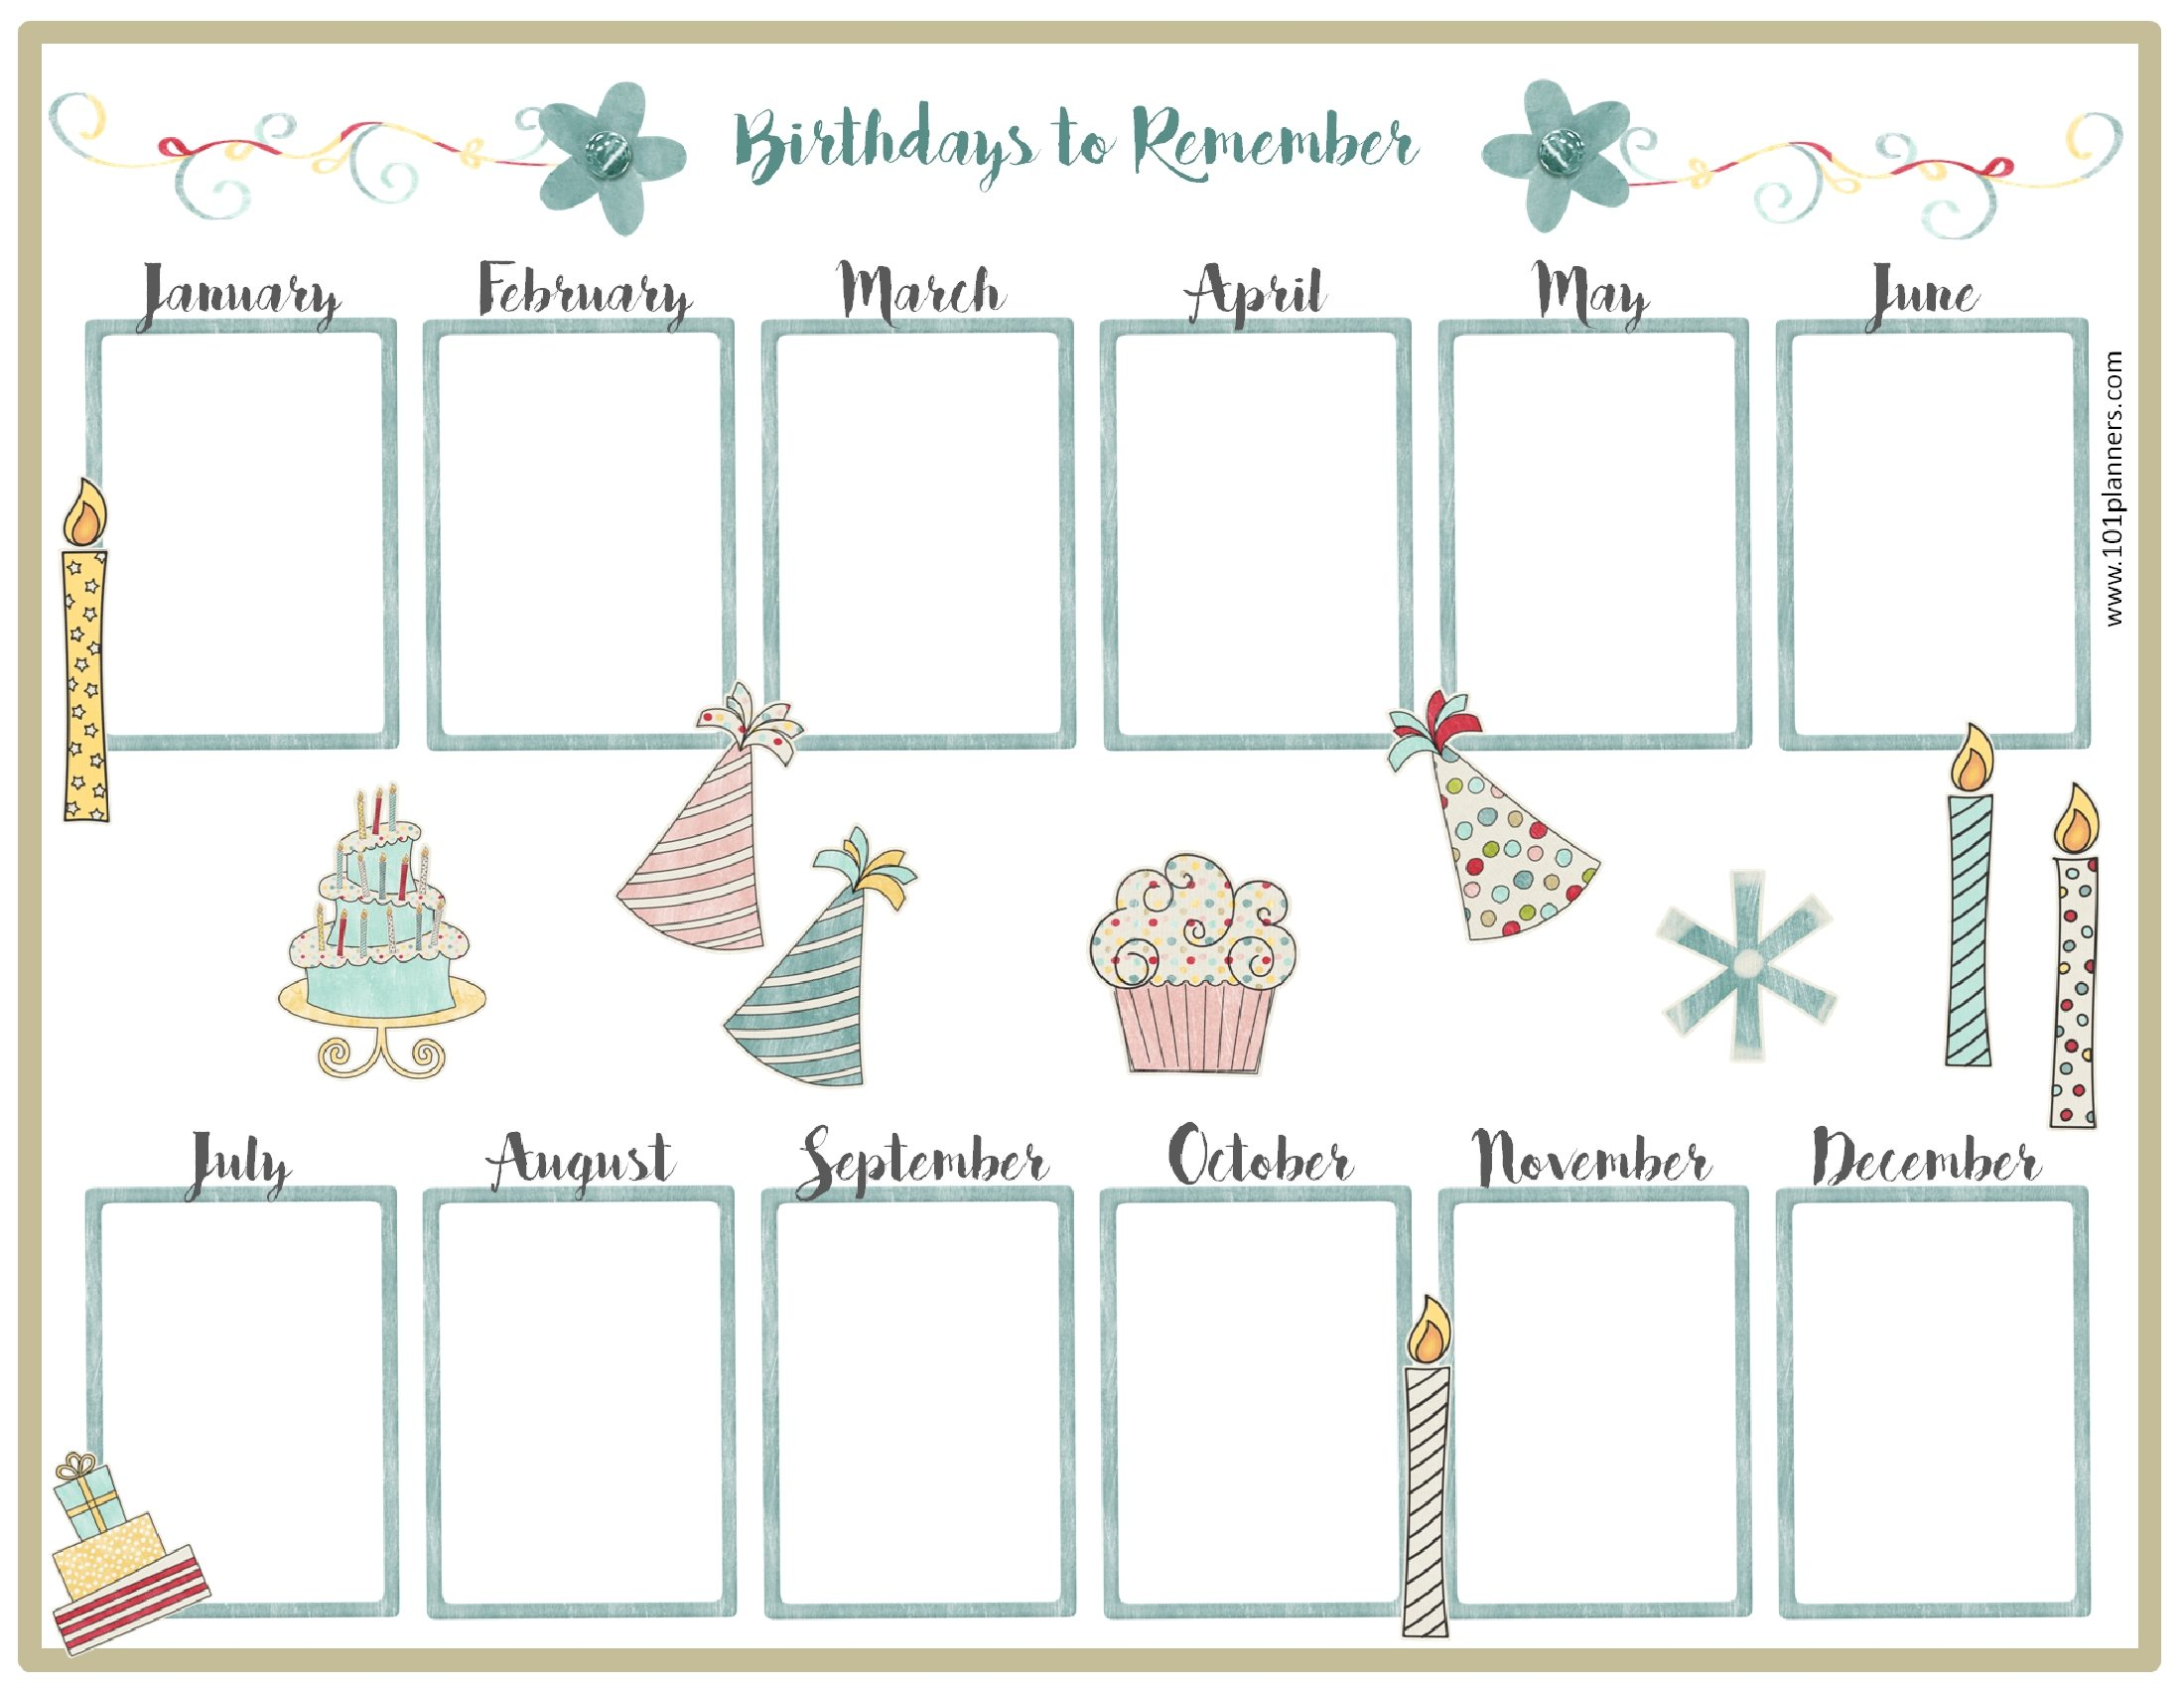 birthday calendar design templates ; monthly-birthday-calendar-template-birthday-calendar-template-6-Frgthu